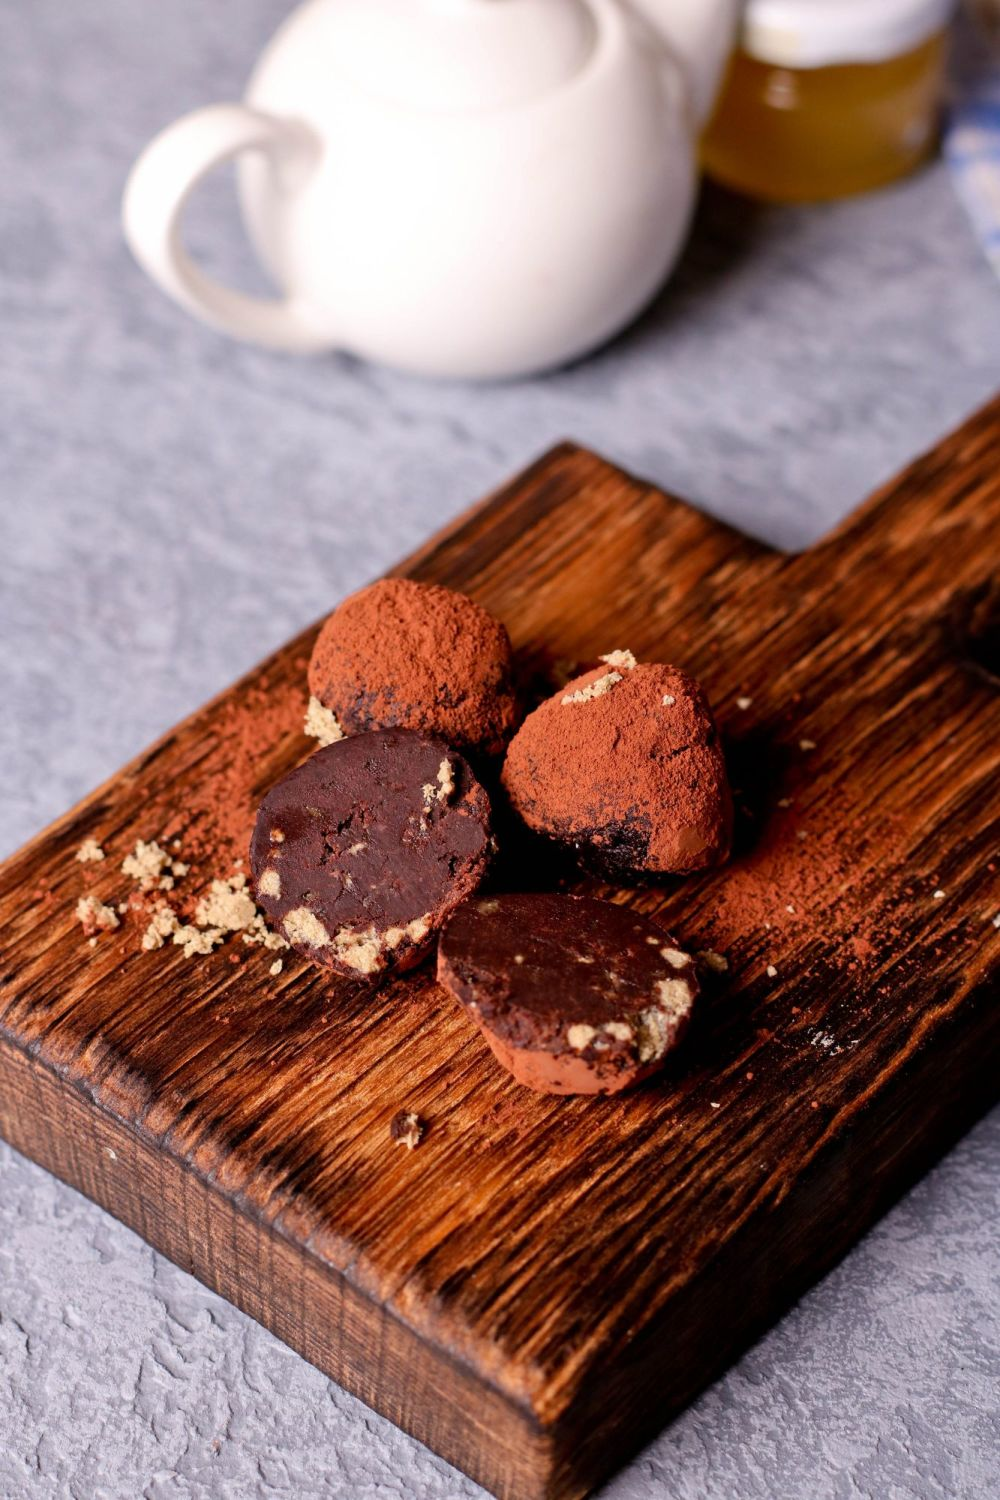 Rum chocolate truffles with cake crumbs